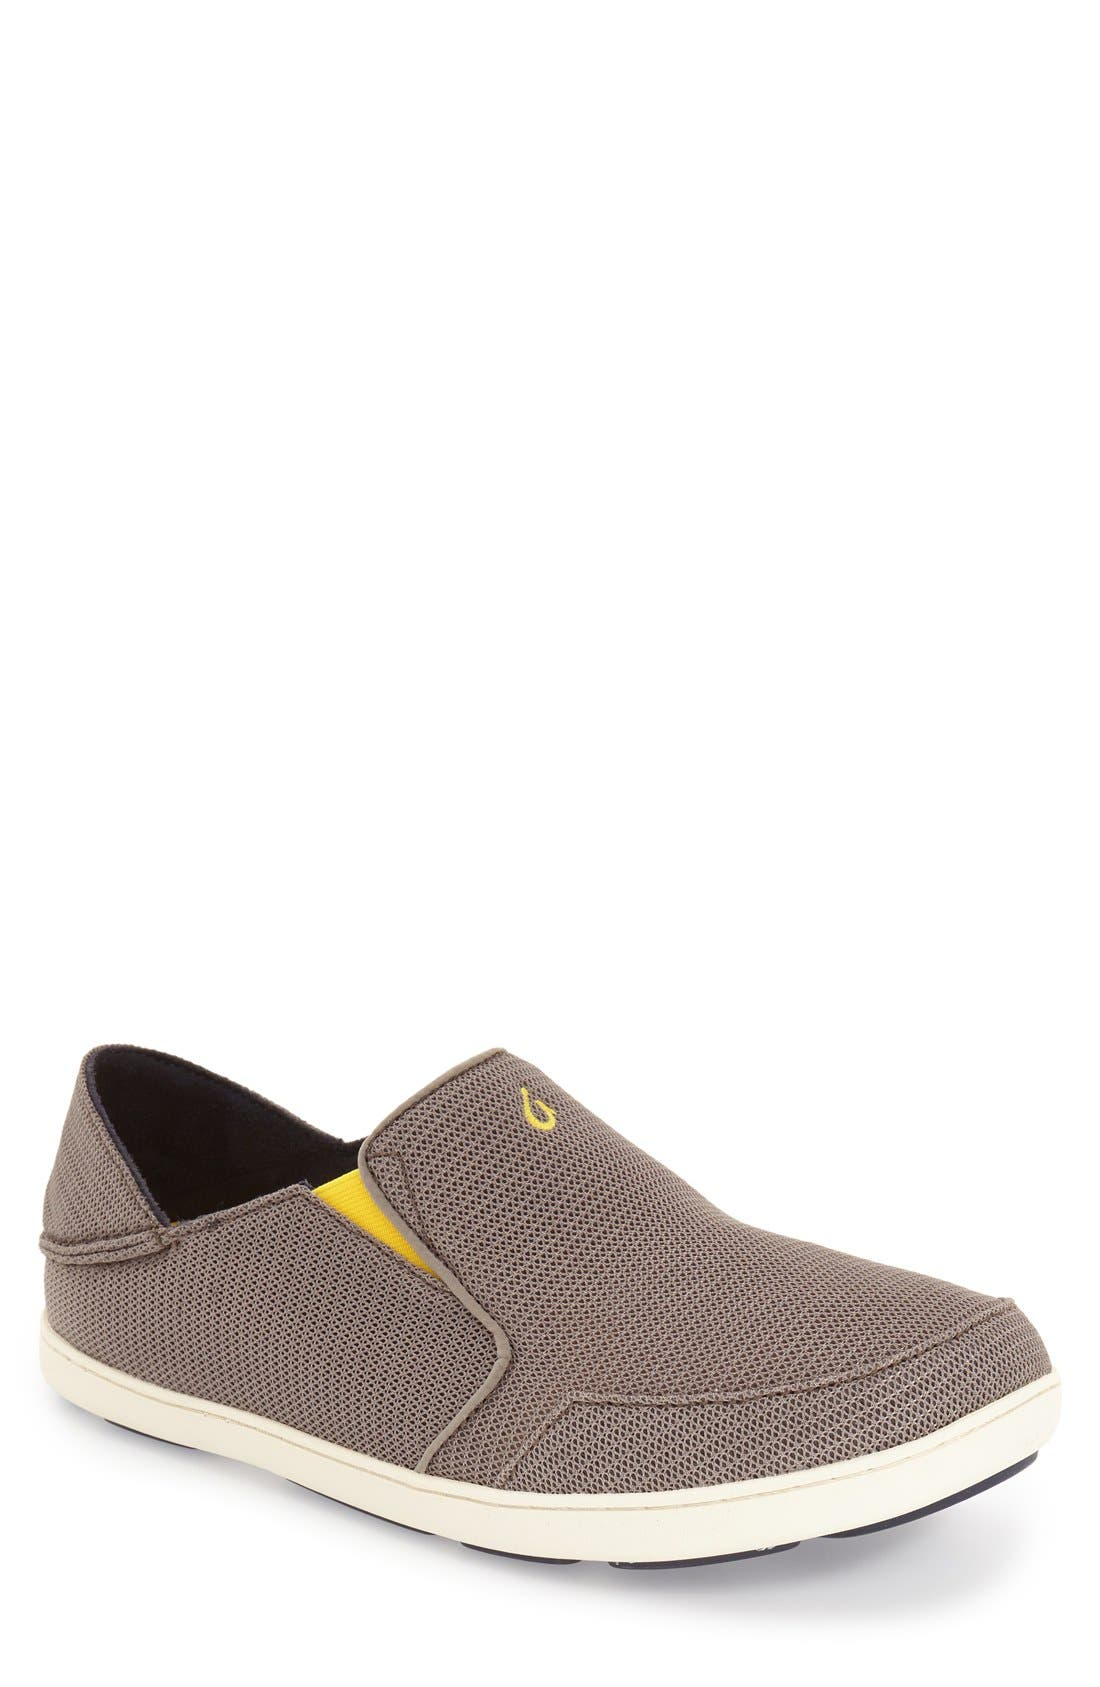 Alternate Image 1 Selected - OluKai 'Nohea' Mesh Slip-On (Men)